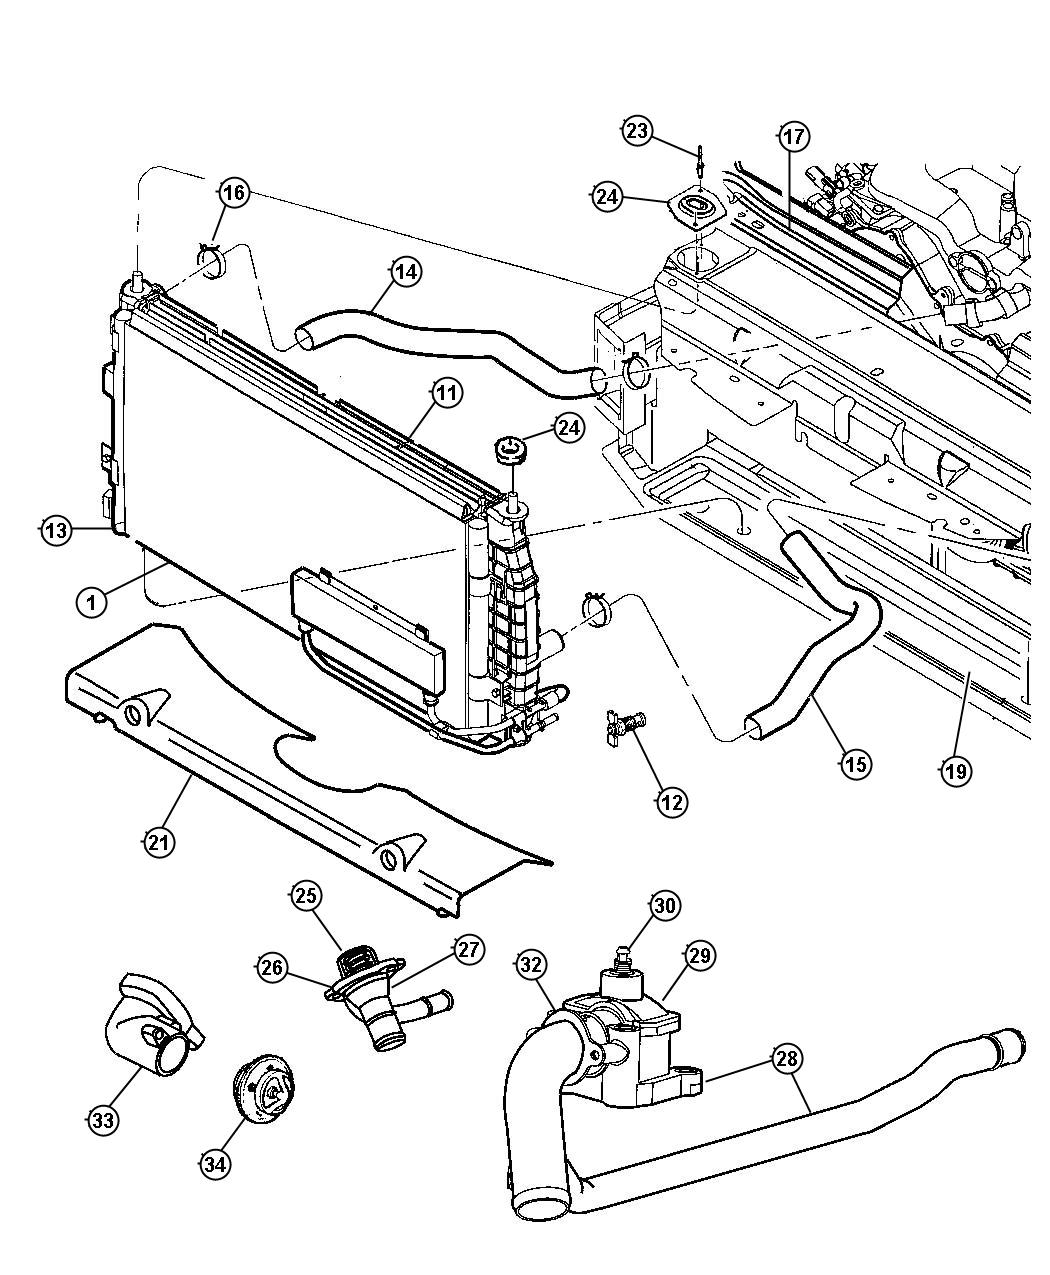 Dodge Intrepid Es Radiator And Related Parts